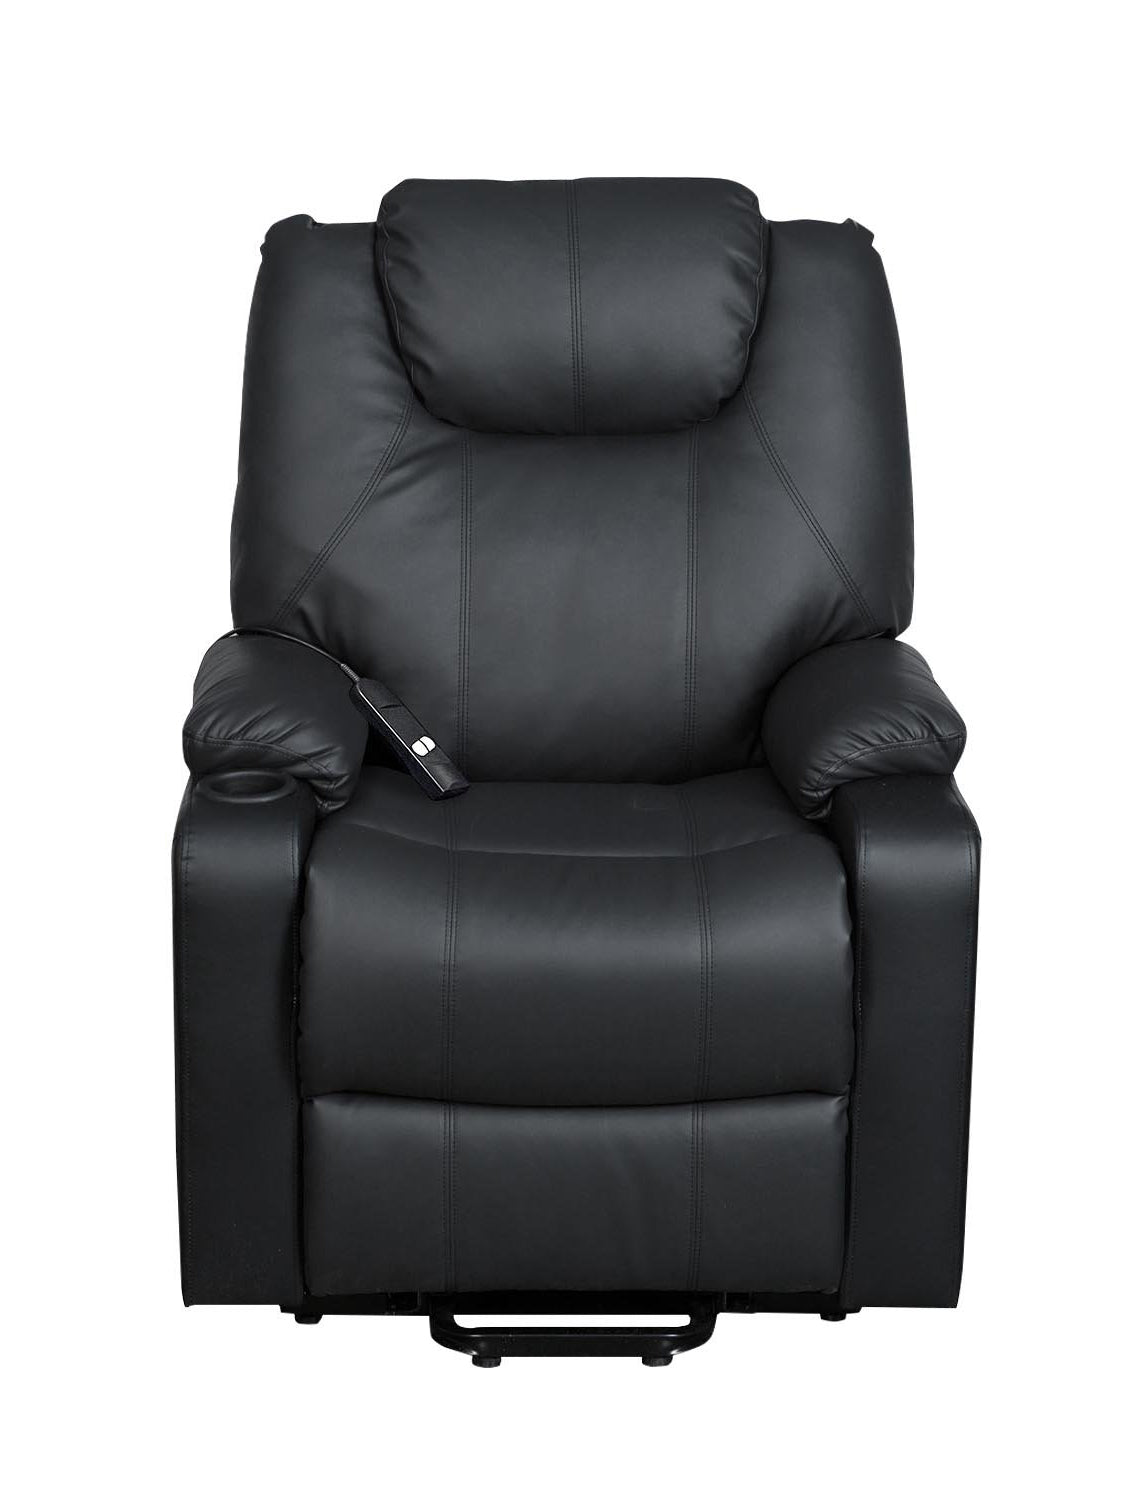 Smugdesk recliner chair Ergonomic lounge chair with cup holders and side pockets,PU leather black